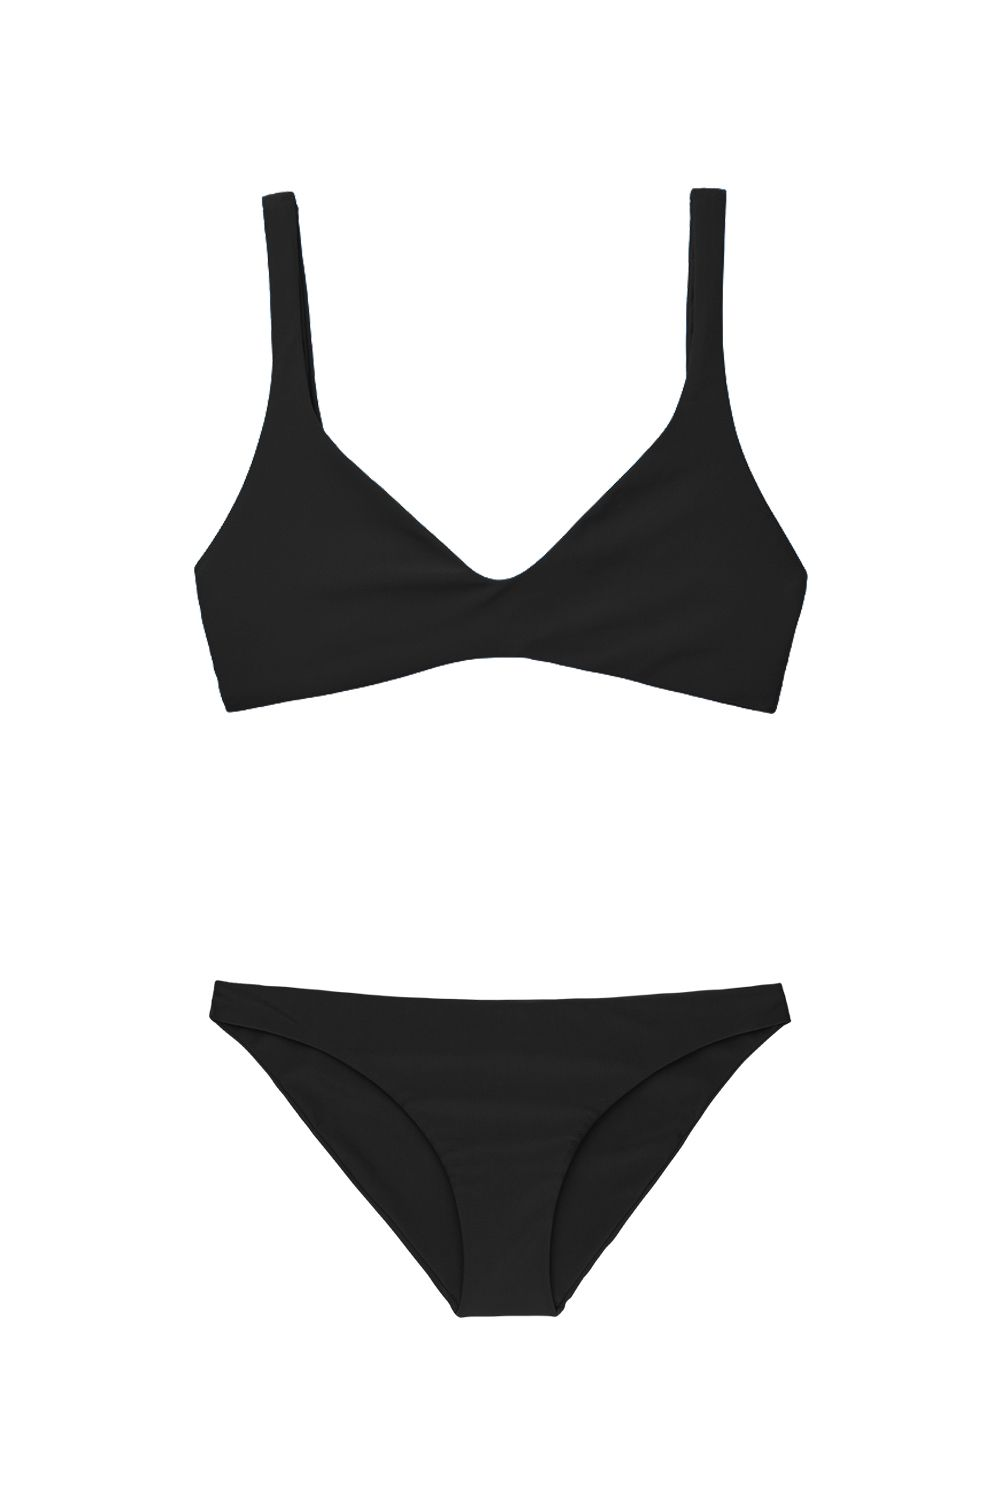 G tinder swimming suit pictures